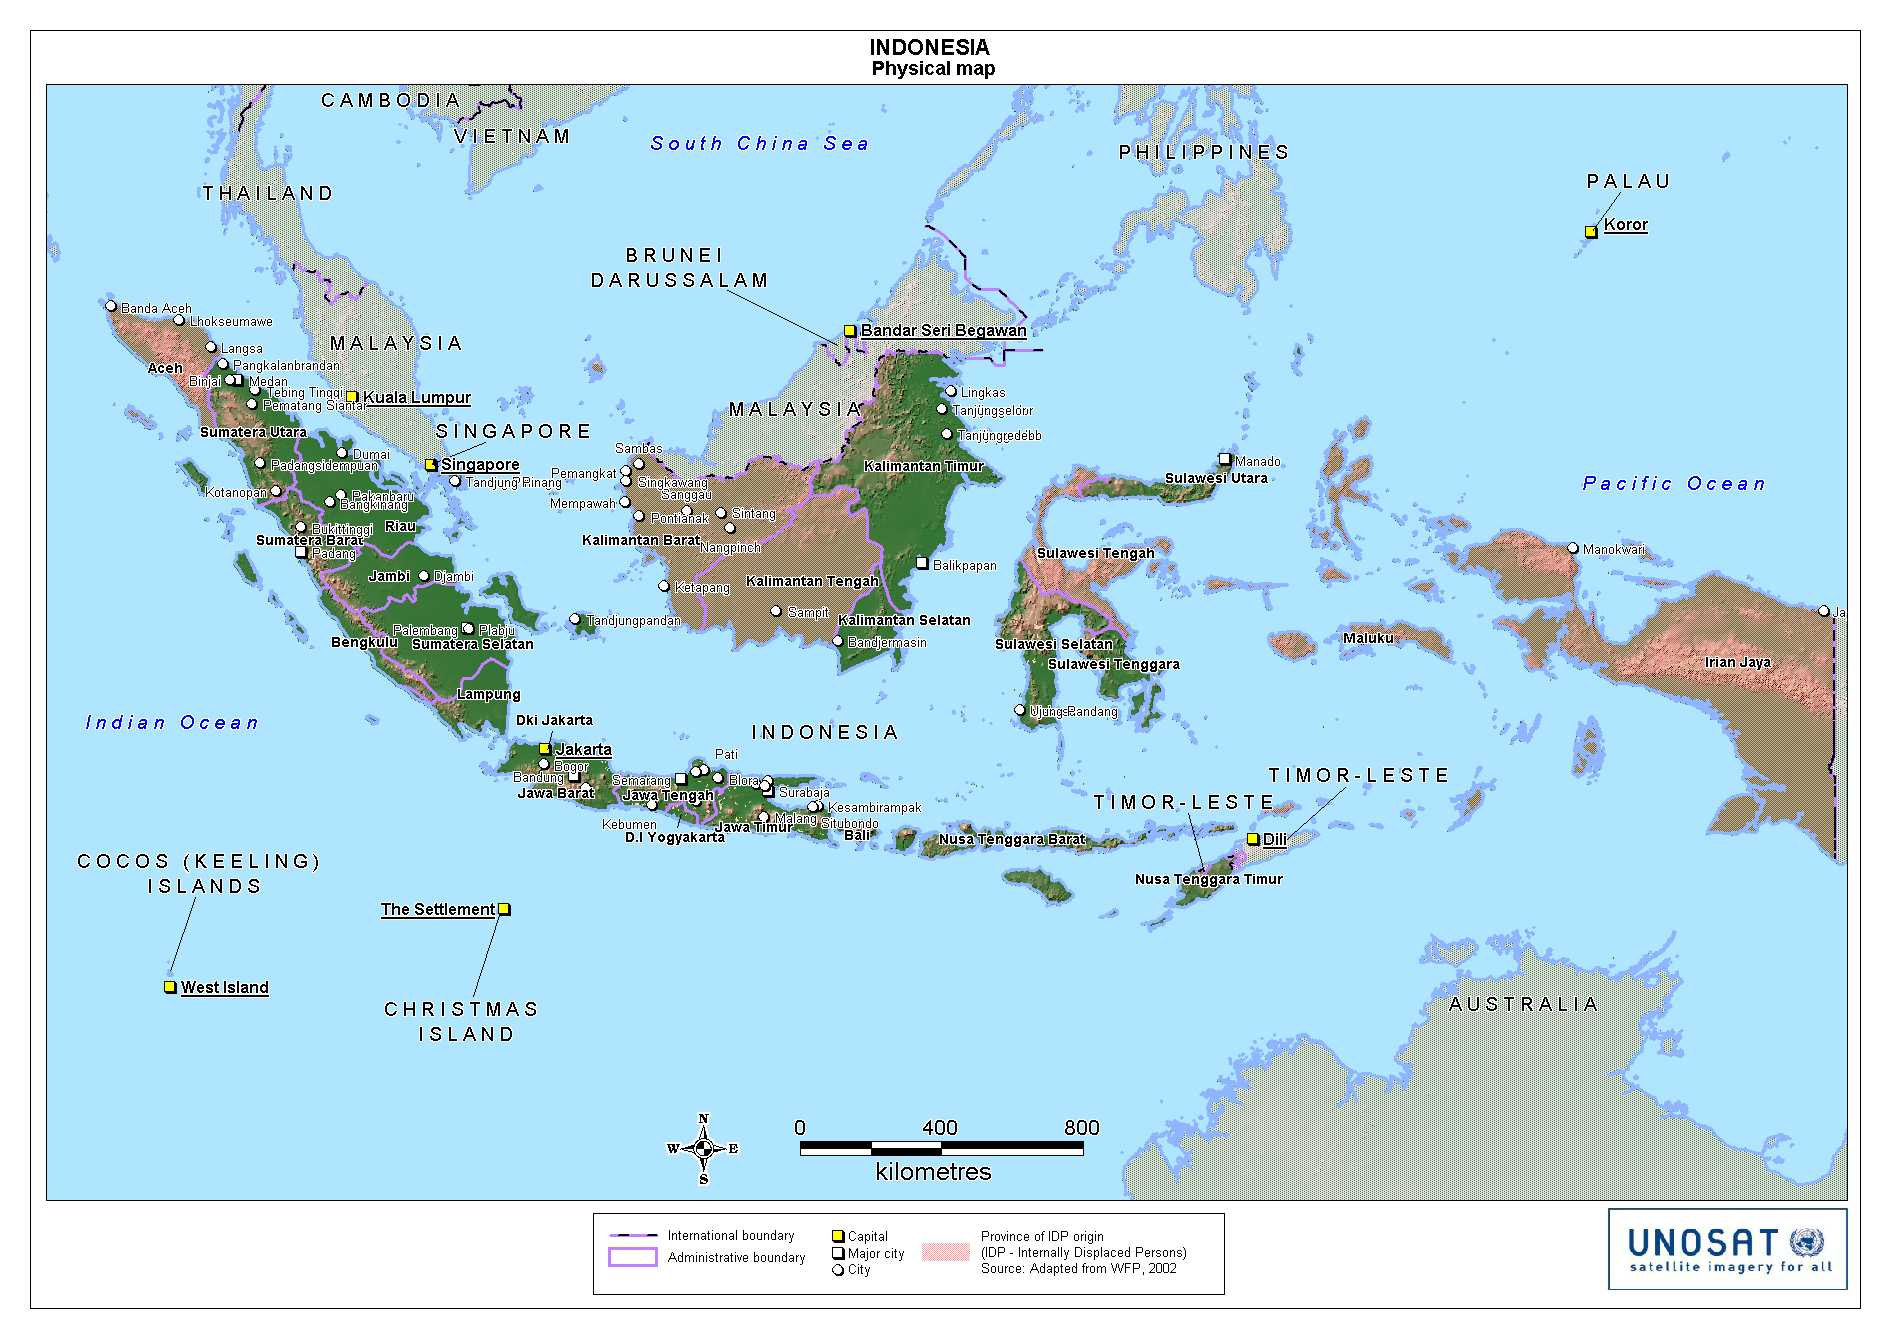 Indonesia Physical Map 1